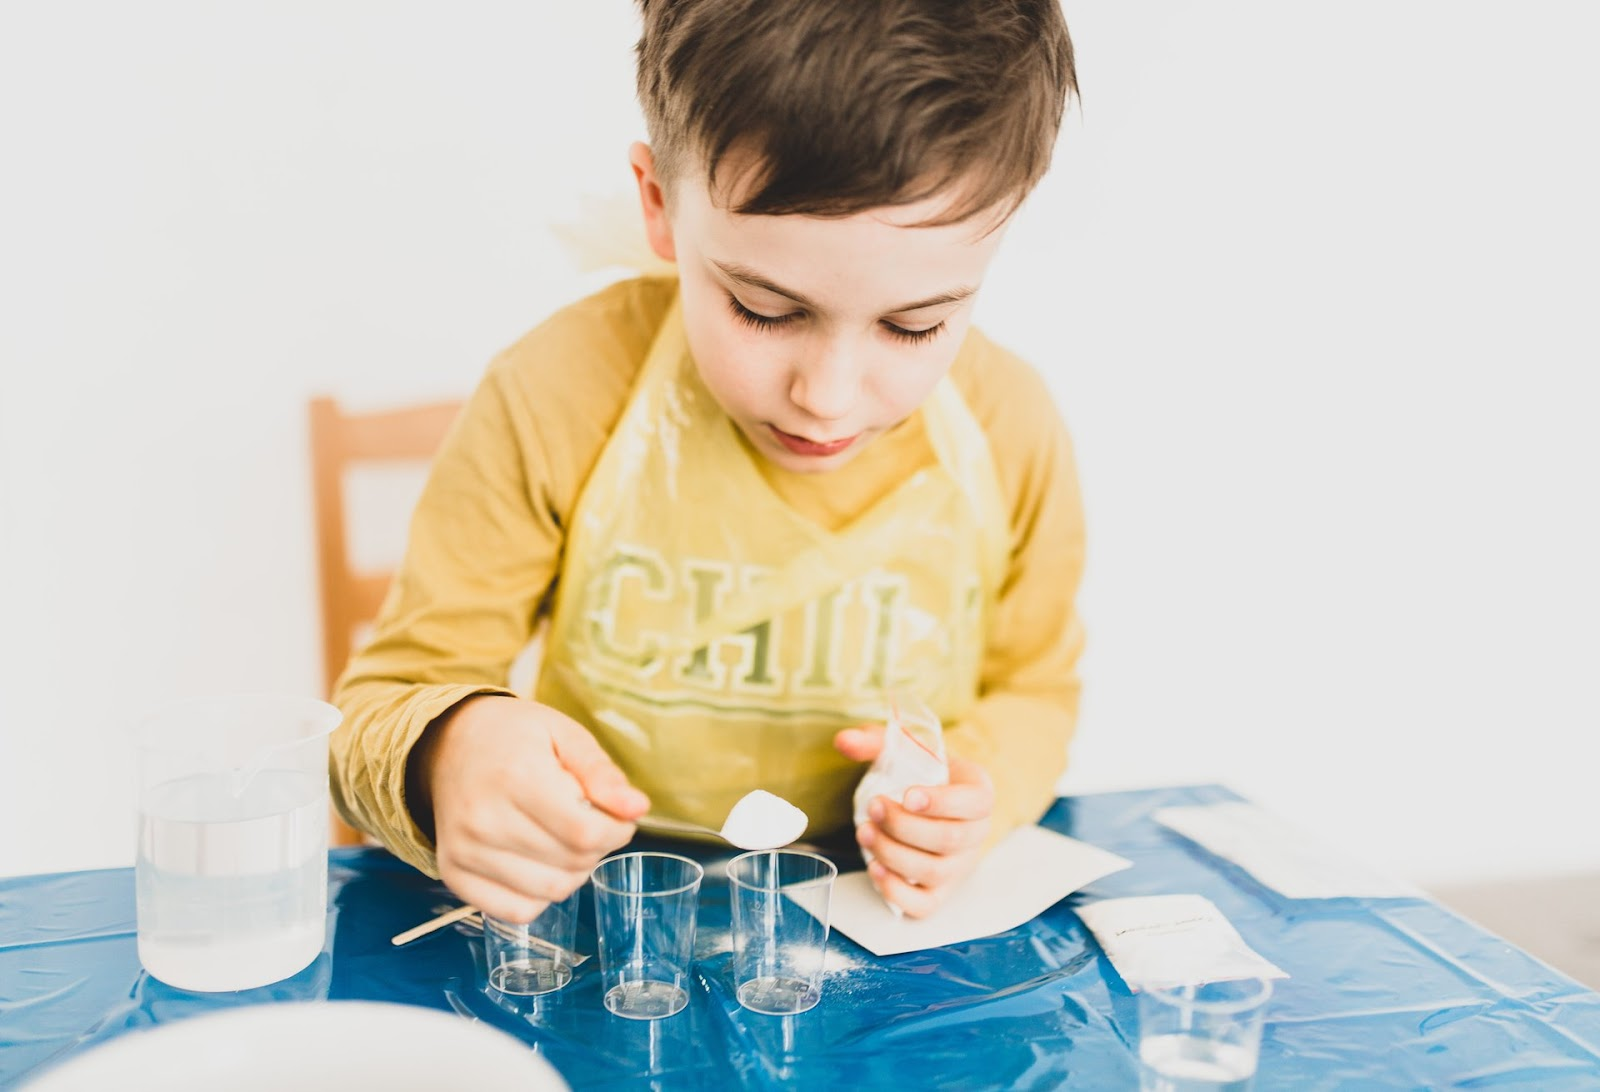 A young boy participates in an age-appropriate STEM activity with small cups and measuring spoons. He has covered himself with an apron and his table with a covering for safety purposes.